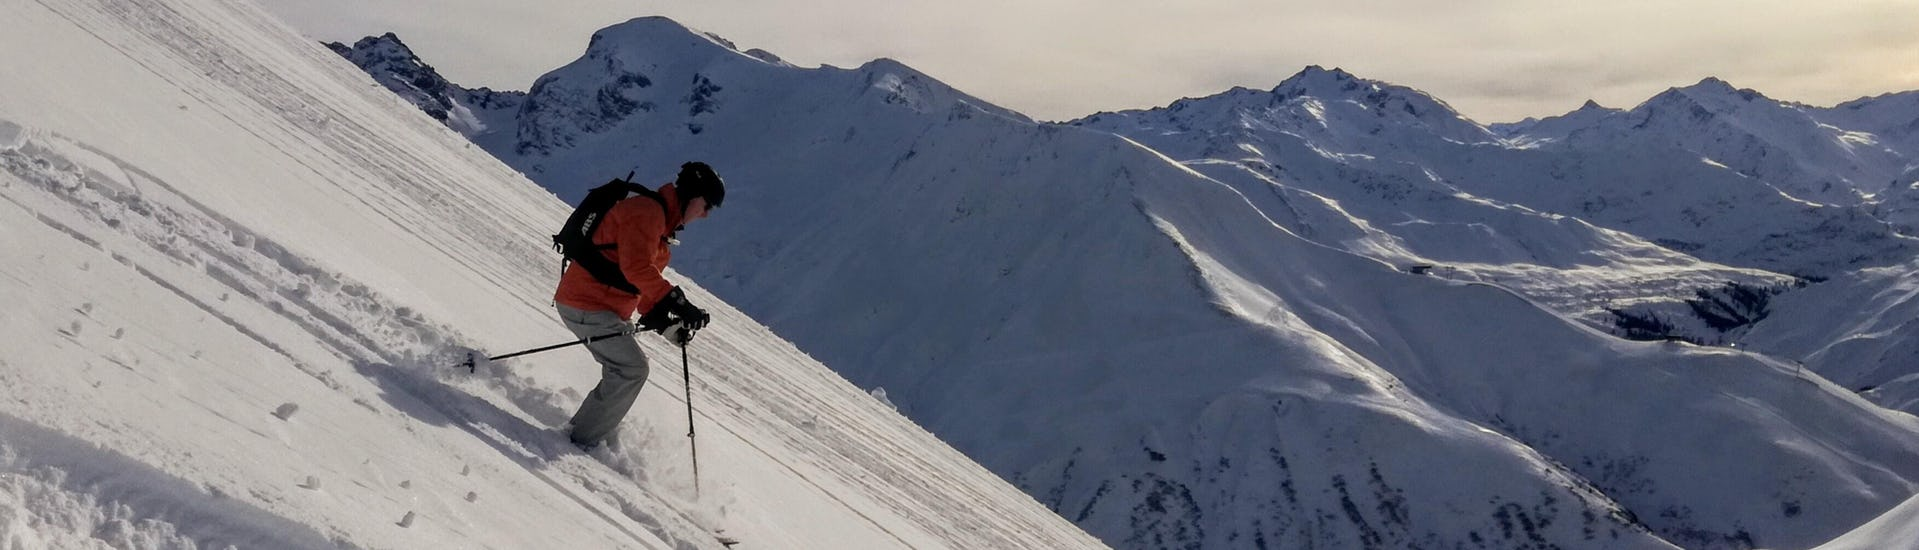 Freeriding private lessons